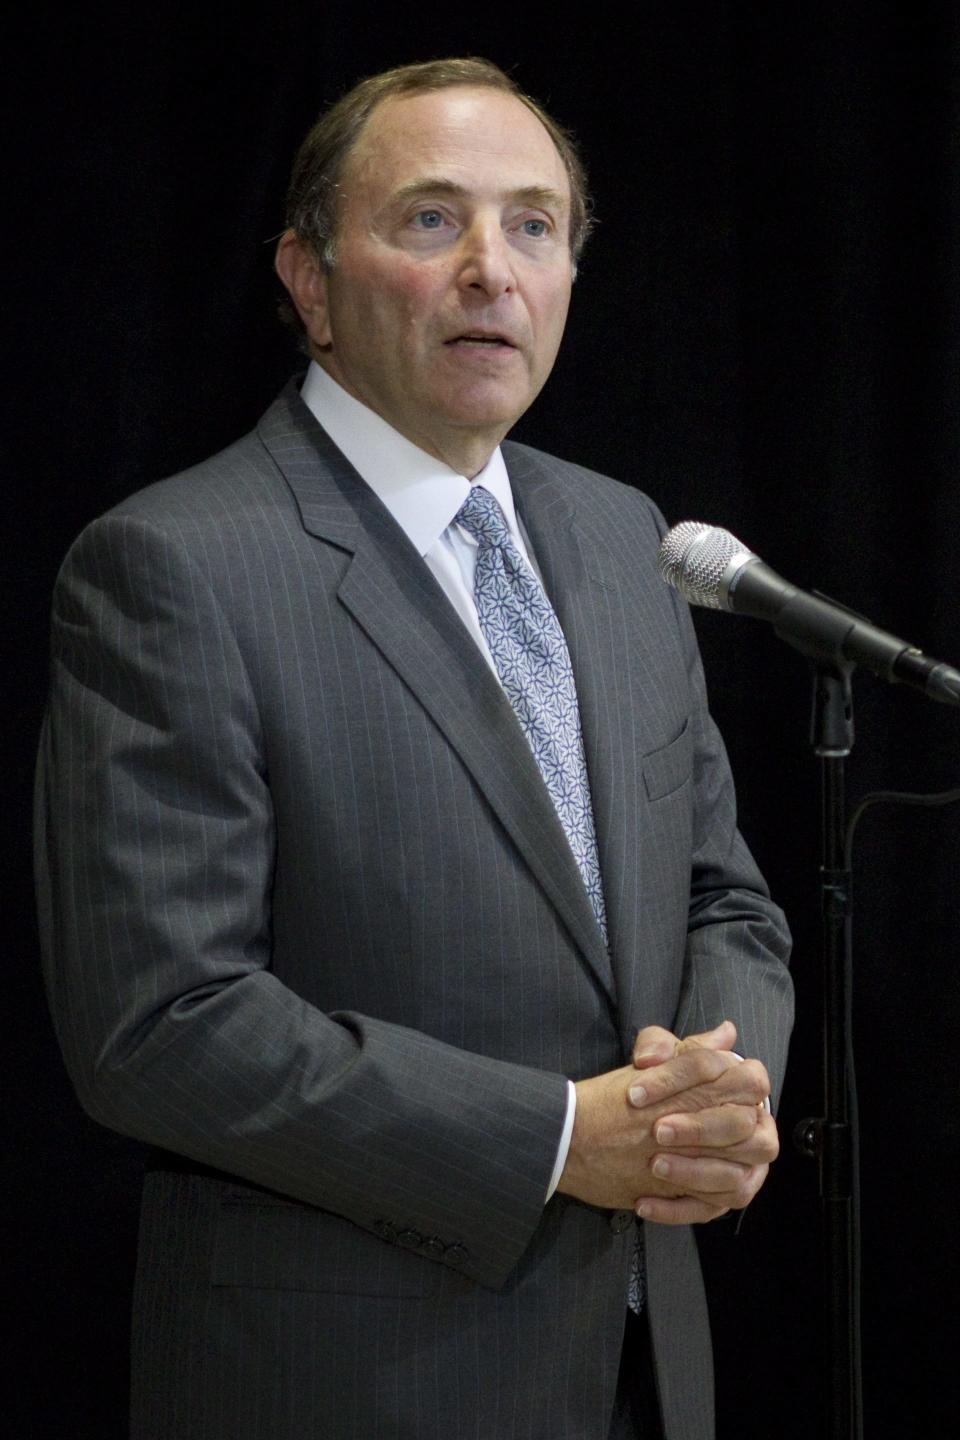 NHL Commissioner Gary Bettman speaks to reporters following collective bargaining talks with the NHL Players' Association, Tuesday, Aug. 14, 2012, in Toronto. (AP Photo/The Canadian Press, Chris Young)